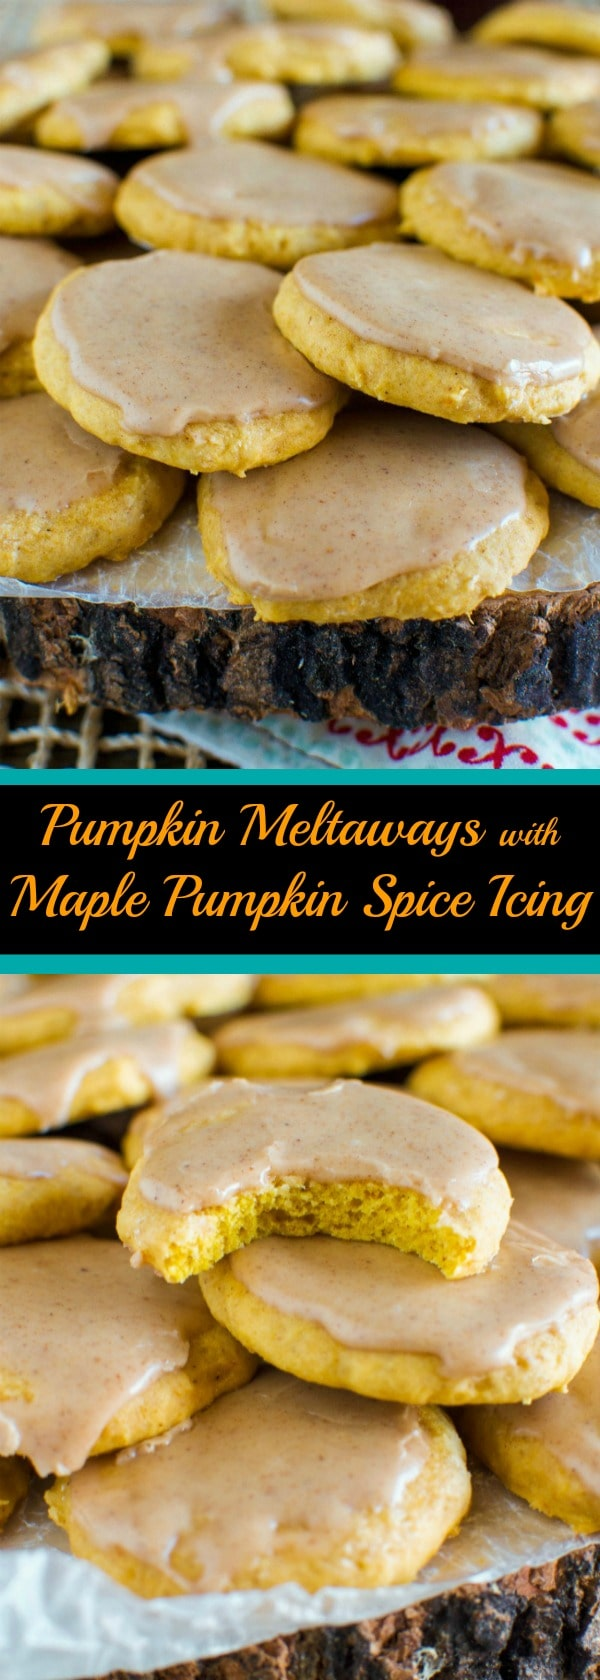 Pumpkin Meltaways with Maple Pumpkin Spice Icing